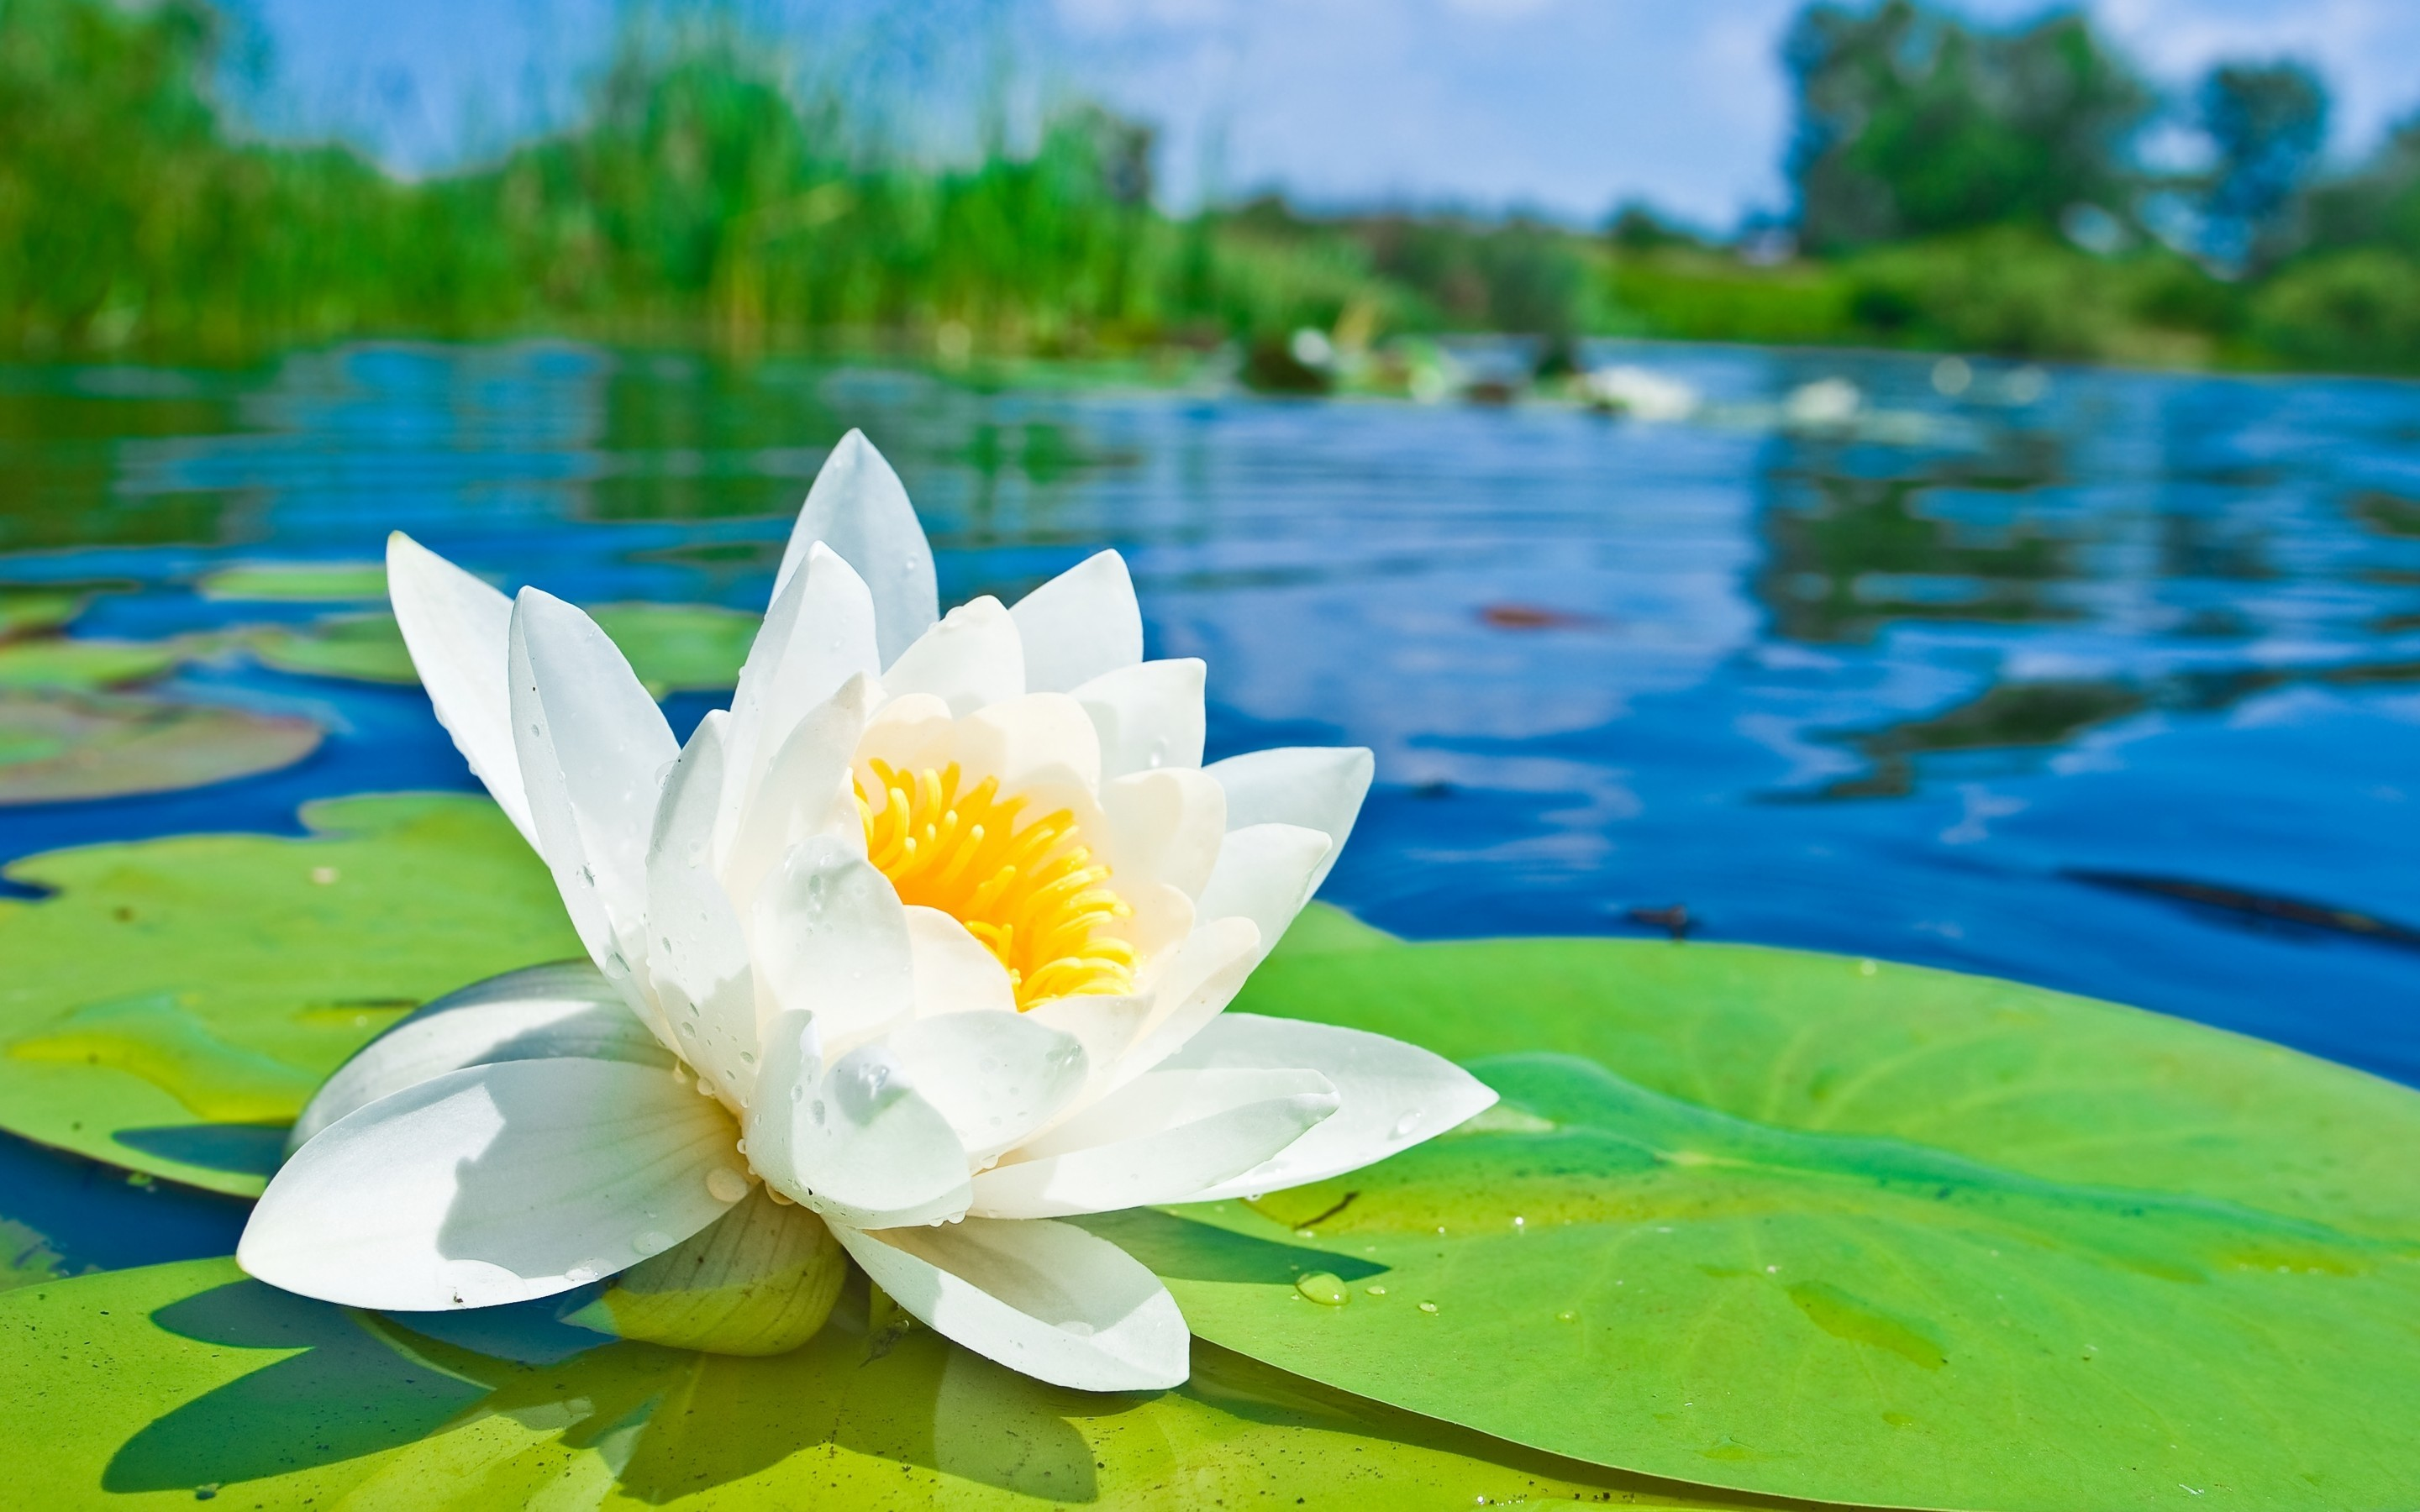 Lily pad wallpapers 49 background pictures 2880x1800 erdenatur seerose natur lily pad close up blume white flower wallpaper izmirmasajfo